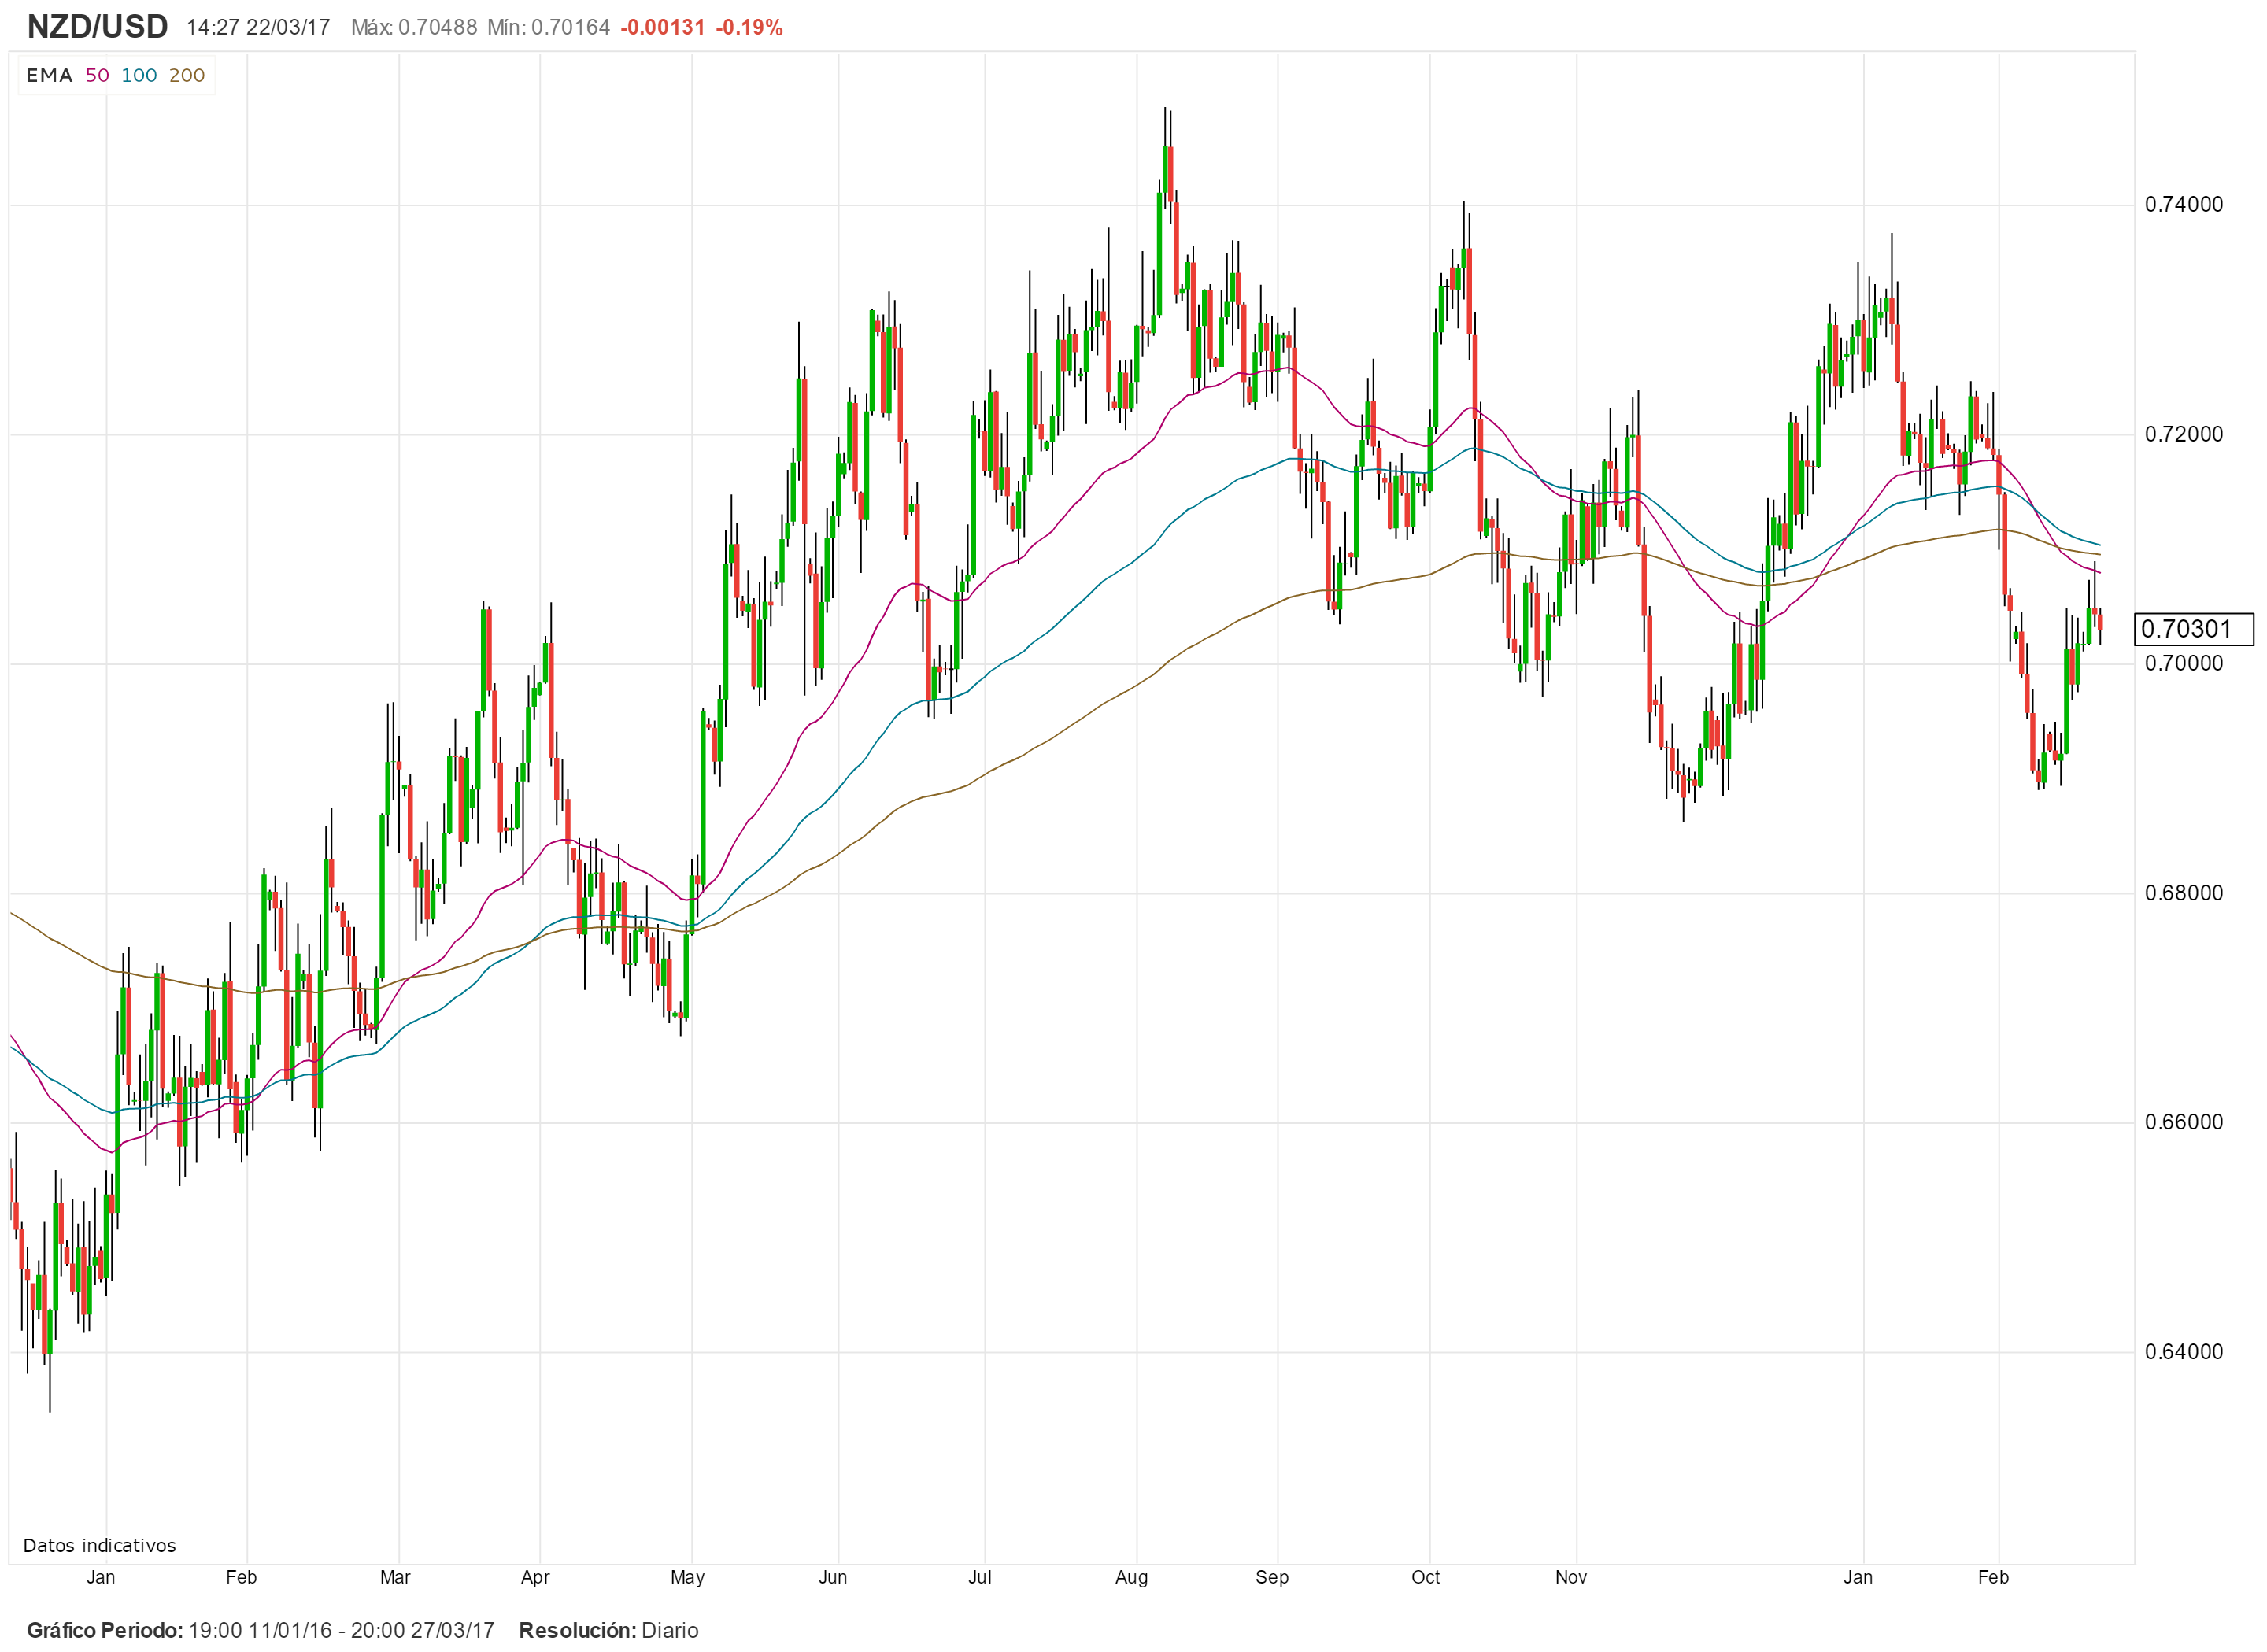 NZD/USD: Se espera que el RBNZ mantenga su tasa de interés estable y ratifique su sesgo neutral